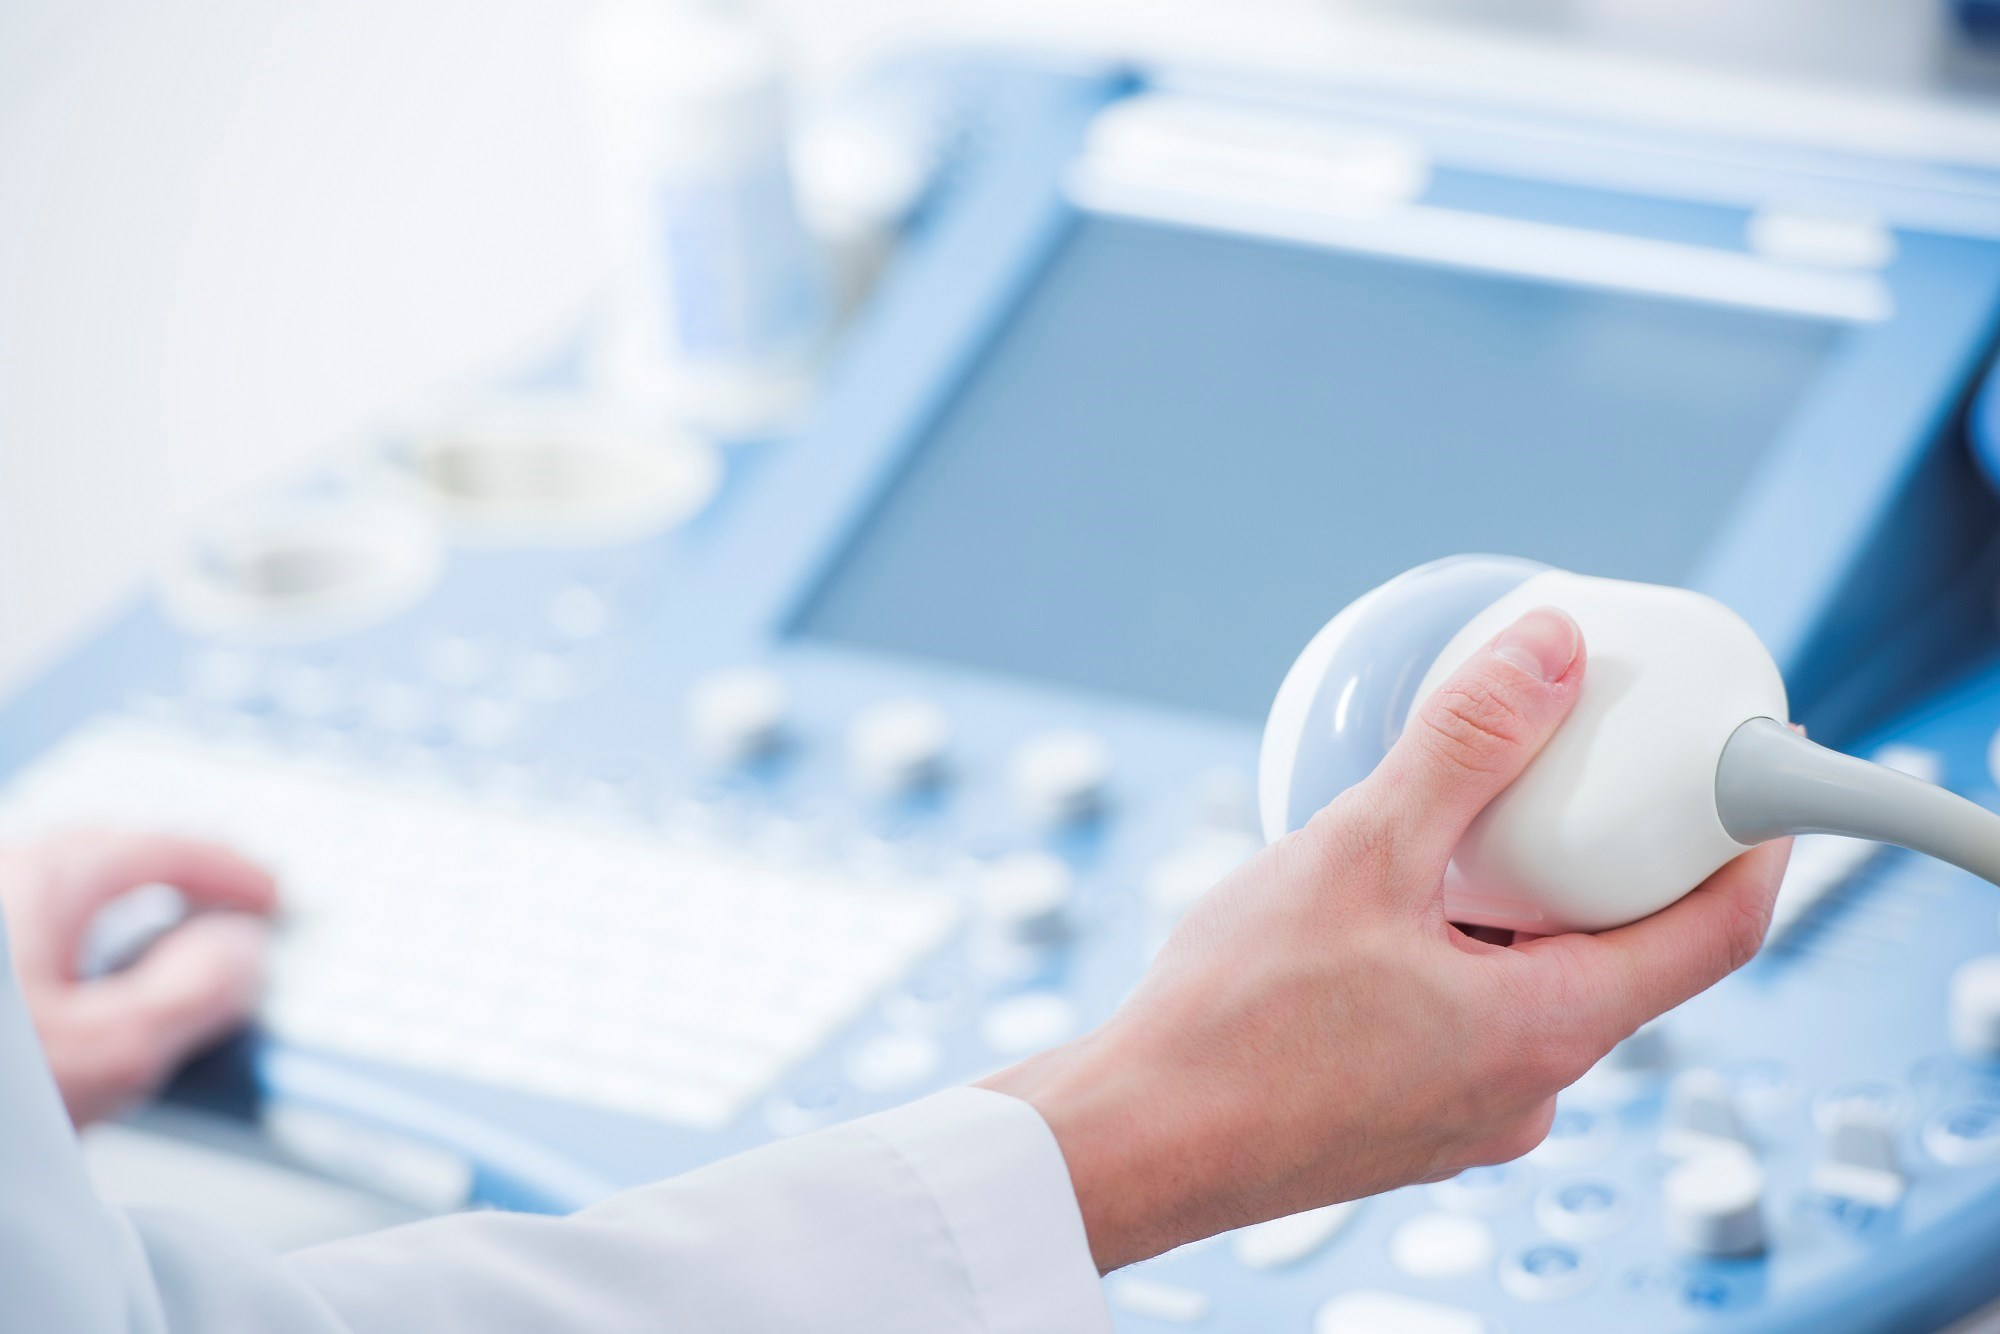 Ultrasound Beneficial for Diagnosing Pure Clear Cell Carcinoma of the Ovary